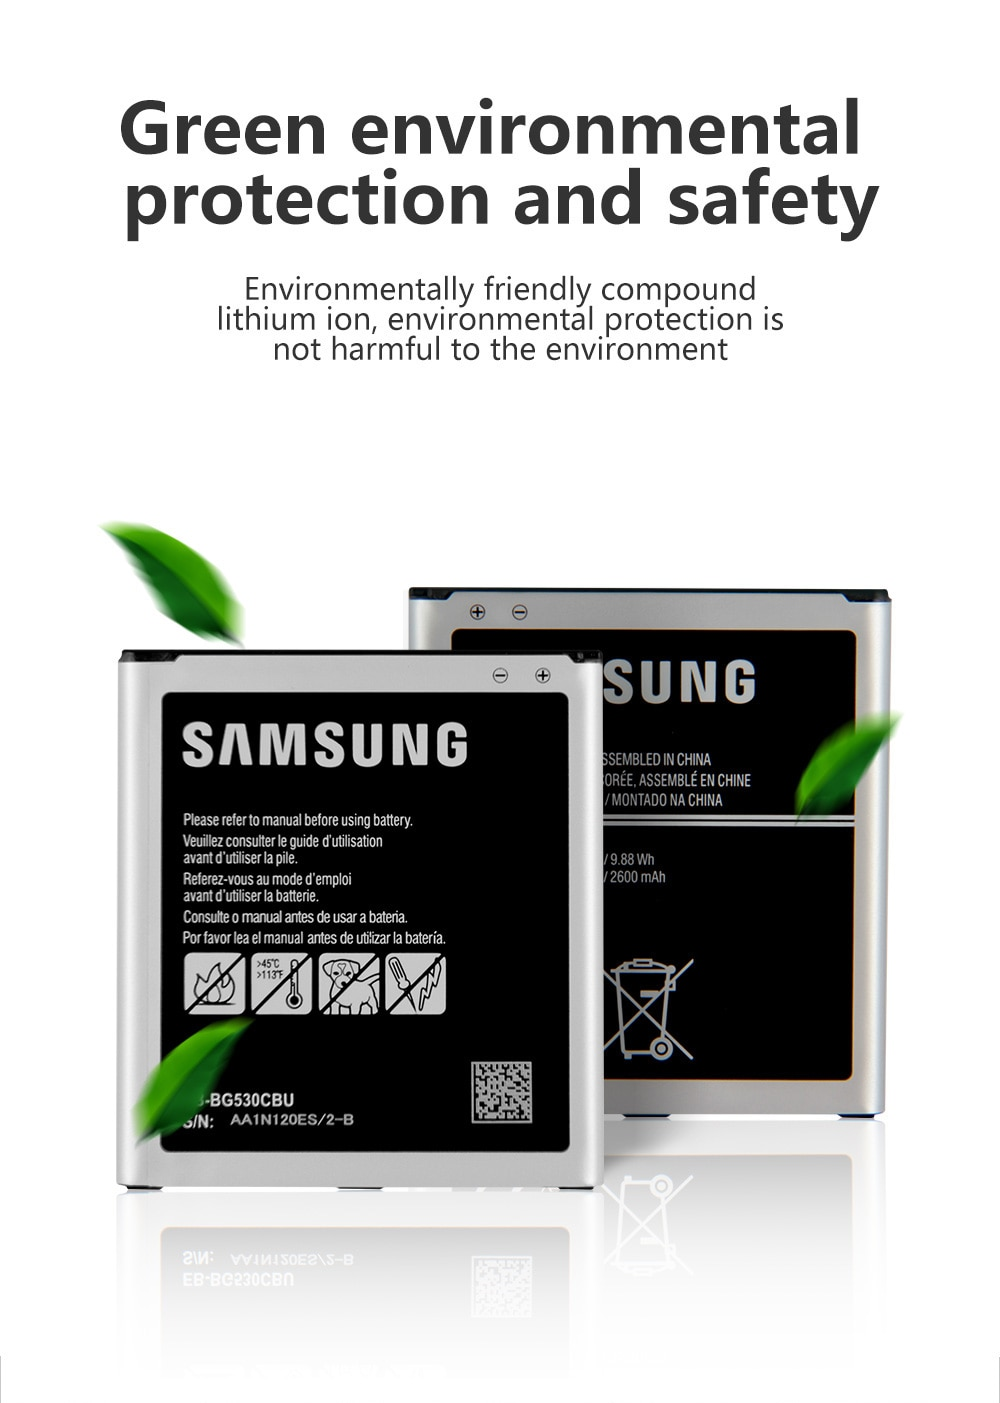 Samsung Battery EB-BG530CBU EB-BG531BBE For Samsung Galaxy Grand Prime J3 2016 G530F J500 On5 J5 2015 G530H G5309W G530 SM-G531H